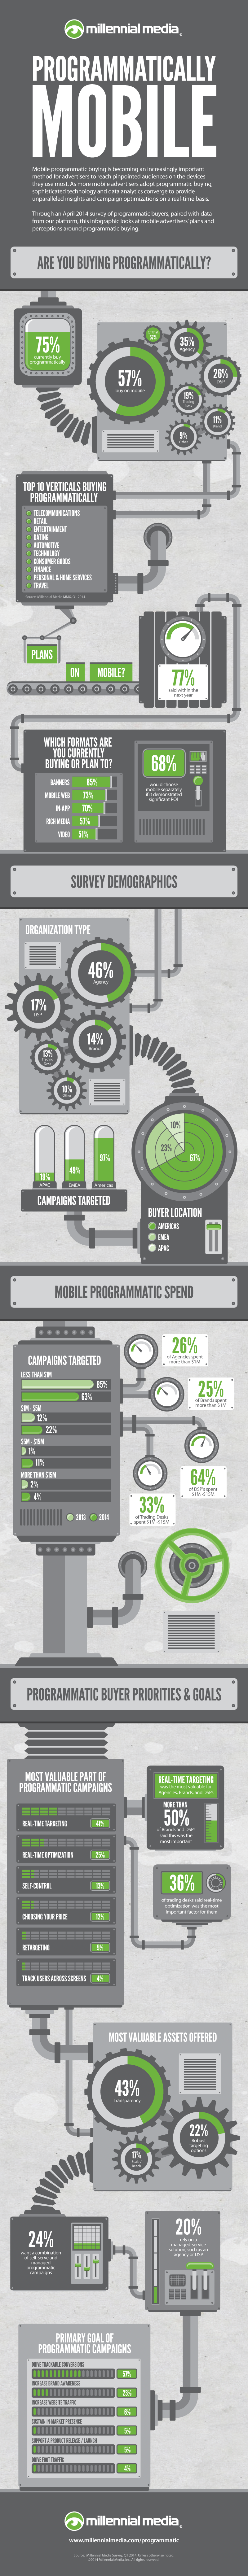 programmatically-mobile-2014